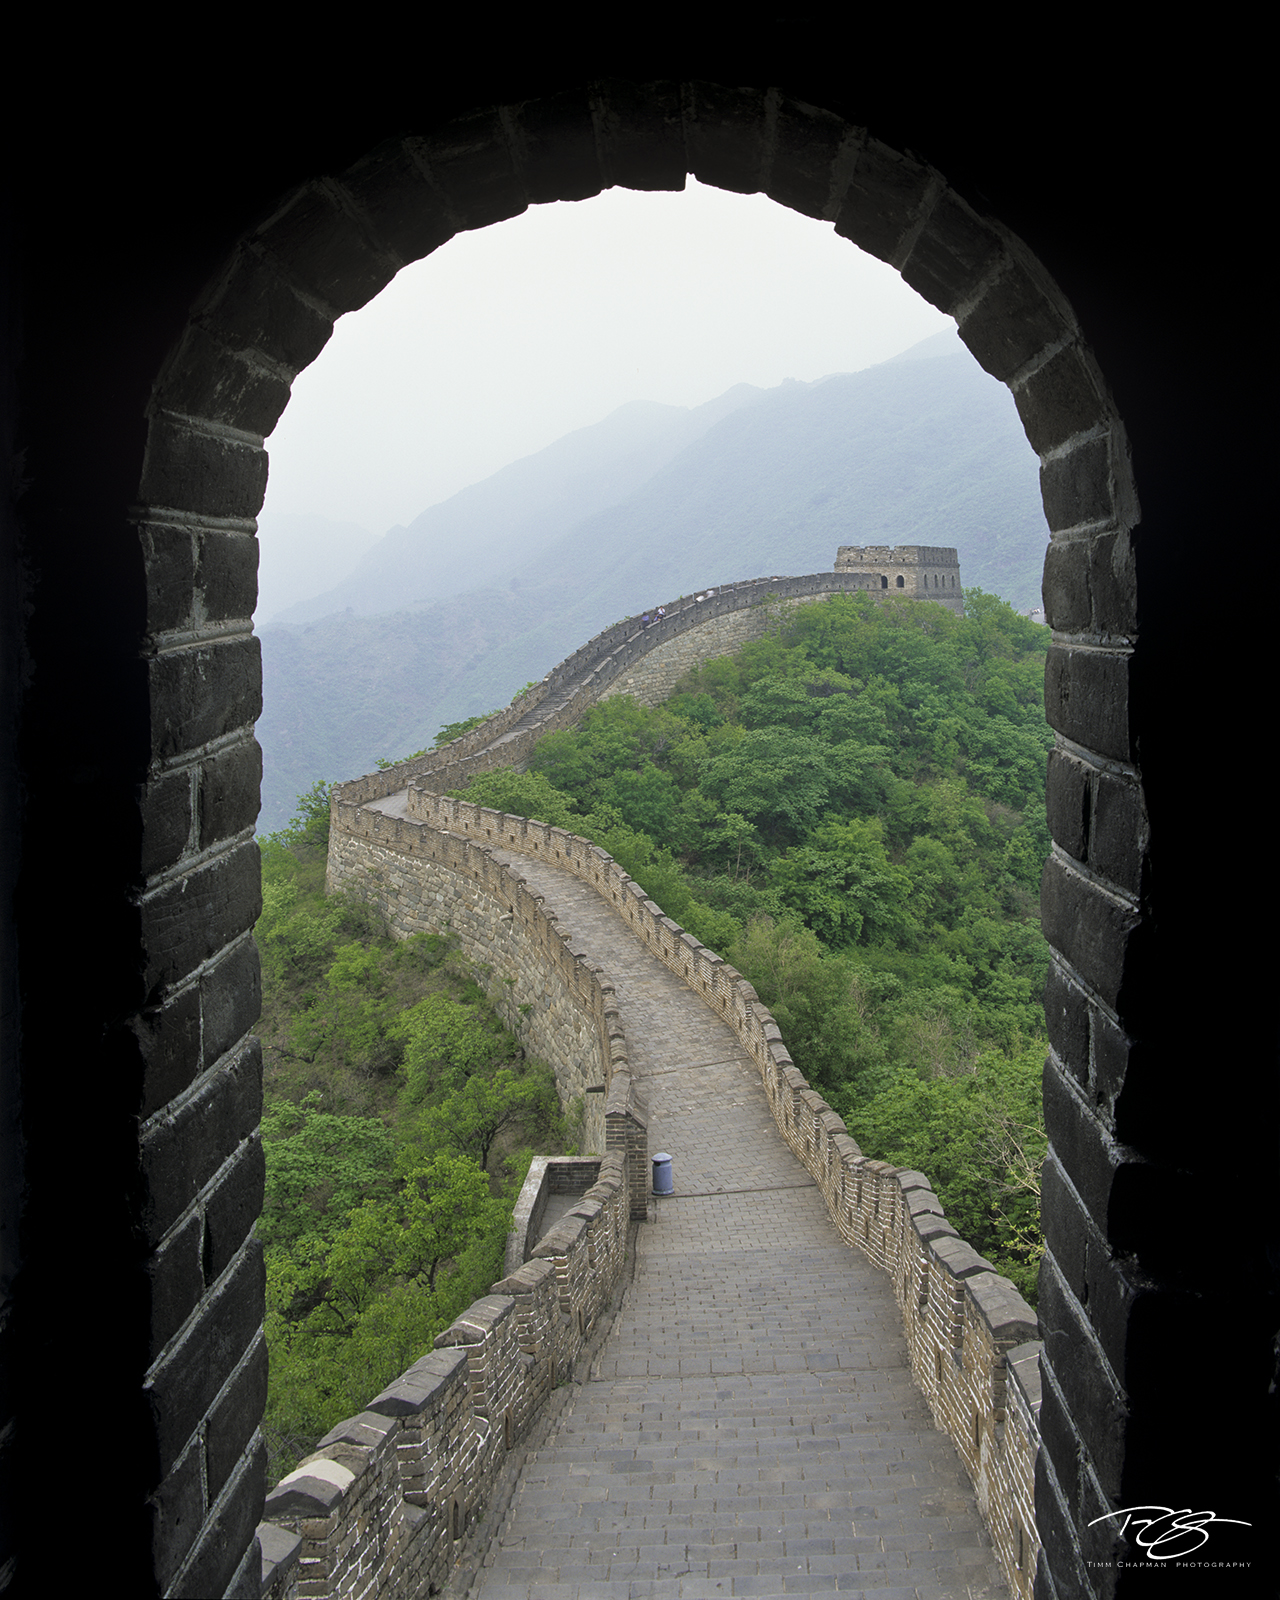 great wall of china, doorway, gatehouse, watch tower, watchtower, mutianyu, badaling, great wall, beijing, fortress, impenetrable, world wonder, 7 wonders of the world, ancient world, wonder, stone sn, photo